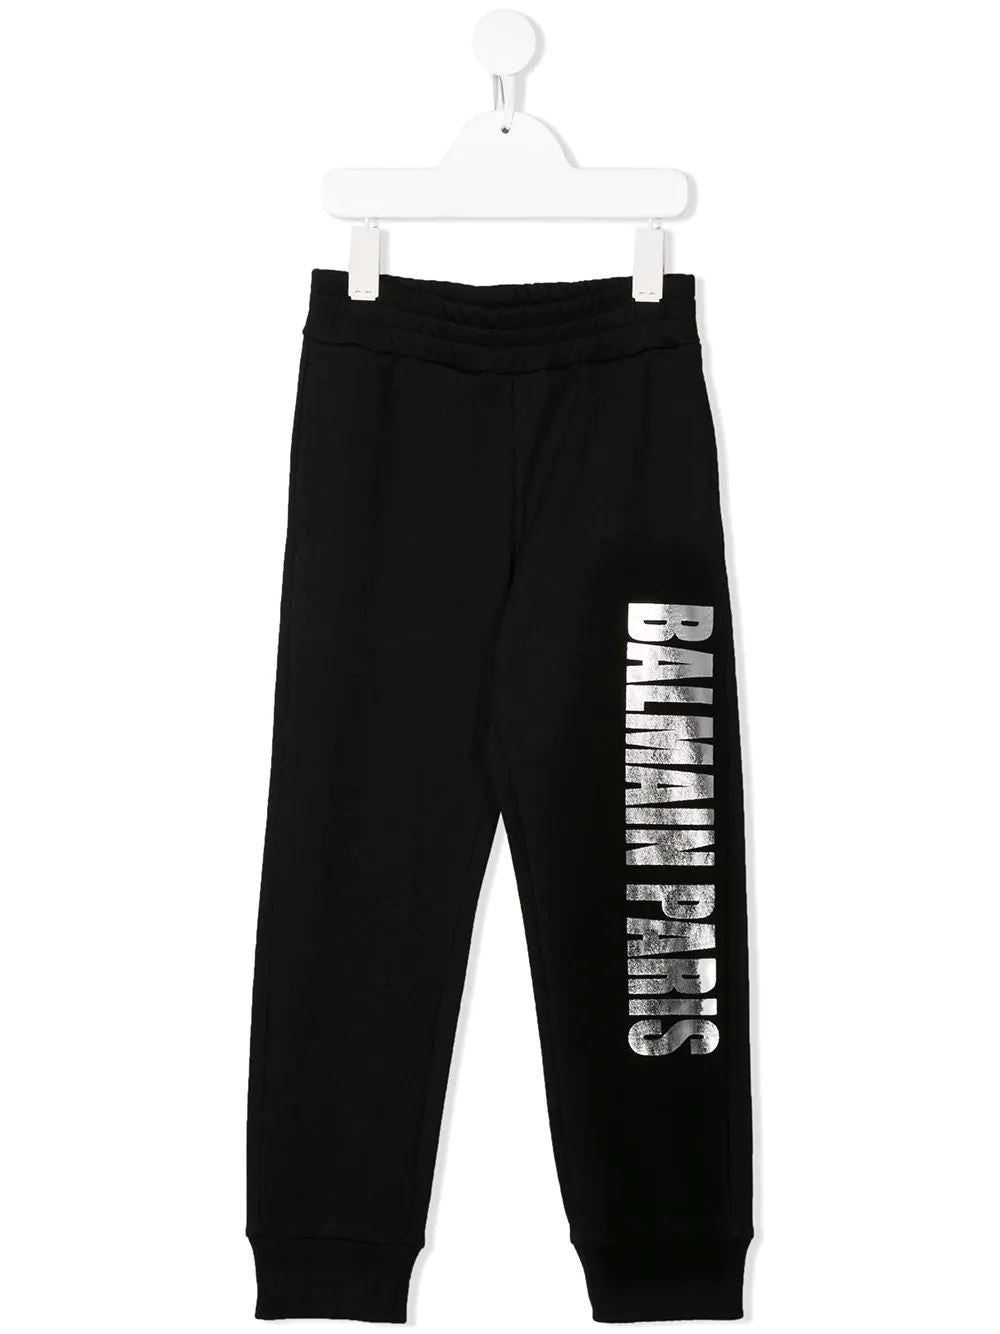 BALMAIN KIDS logo print track pants black - Maison De Fashion